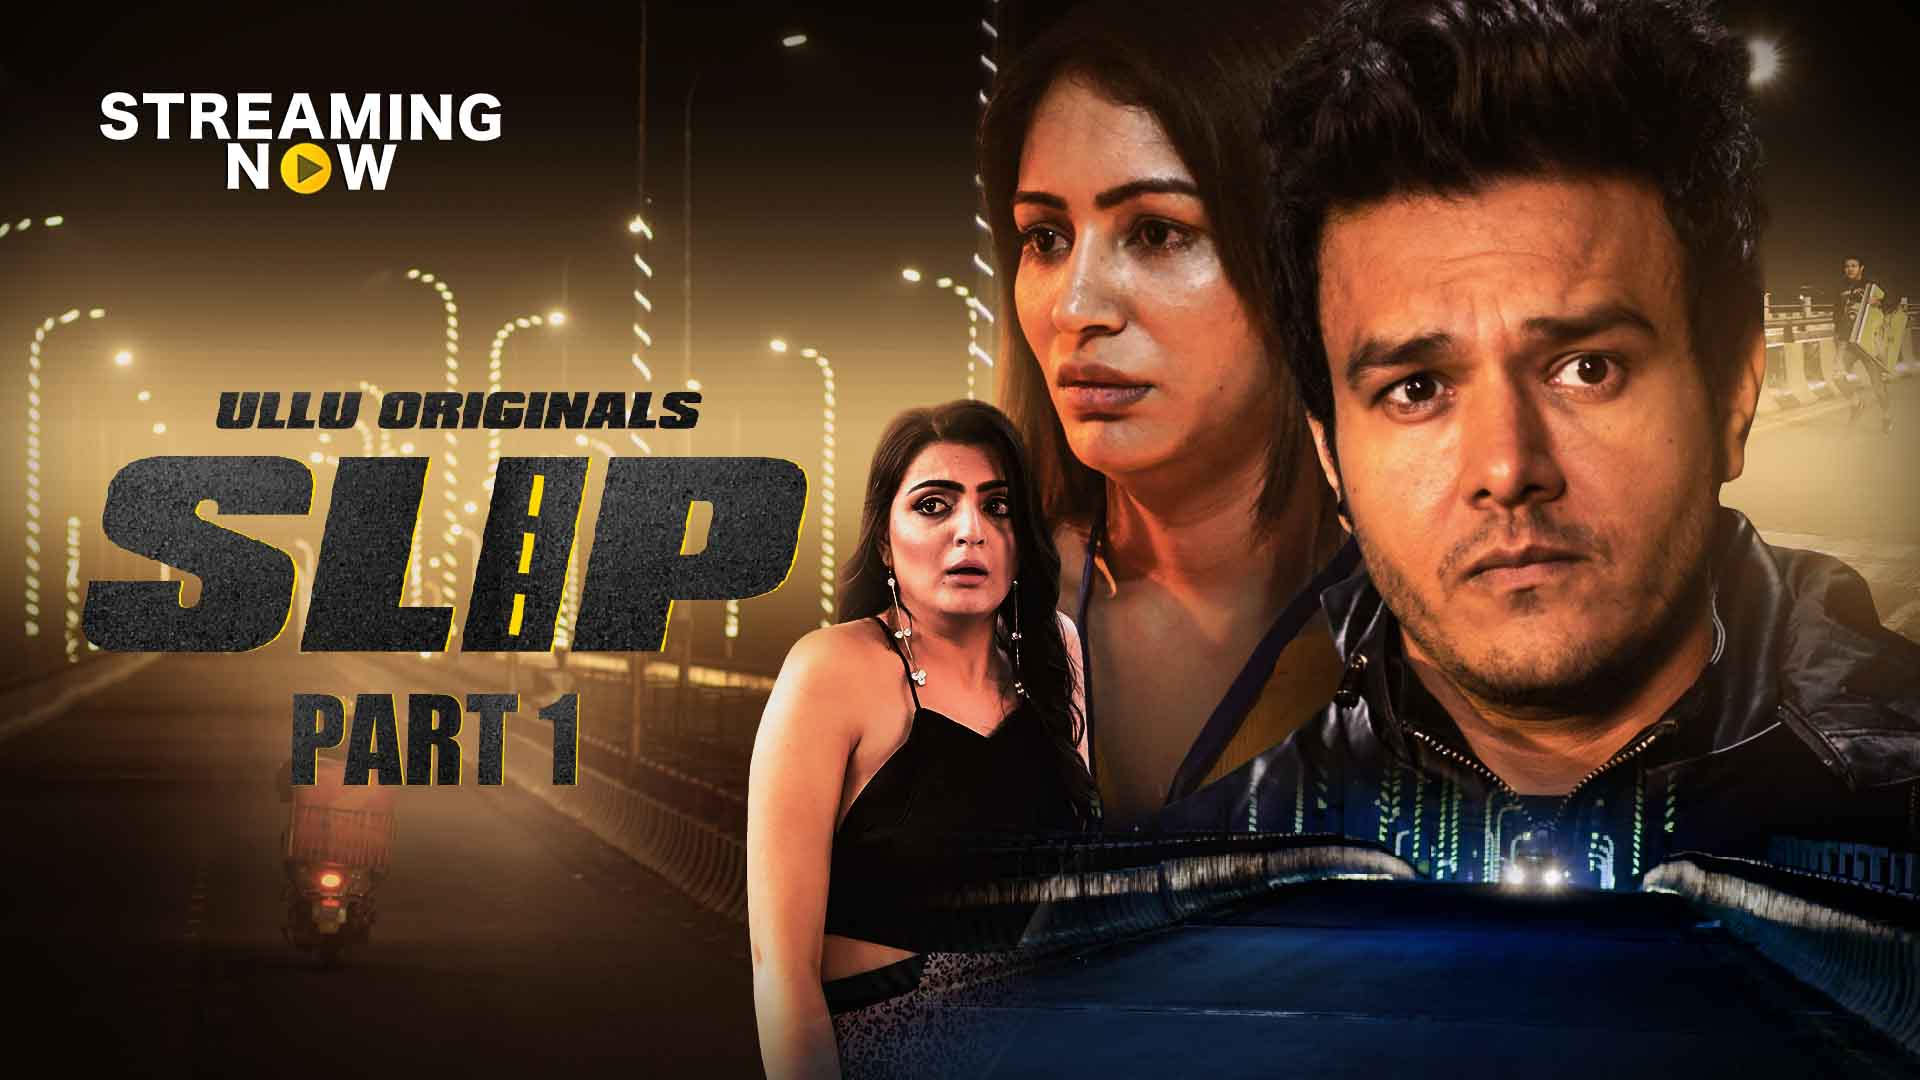 Slip Part 1 2020 S01 Hindi Ullu Originals Complete Web Series 720p HDRip 300MB x264 AAC